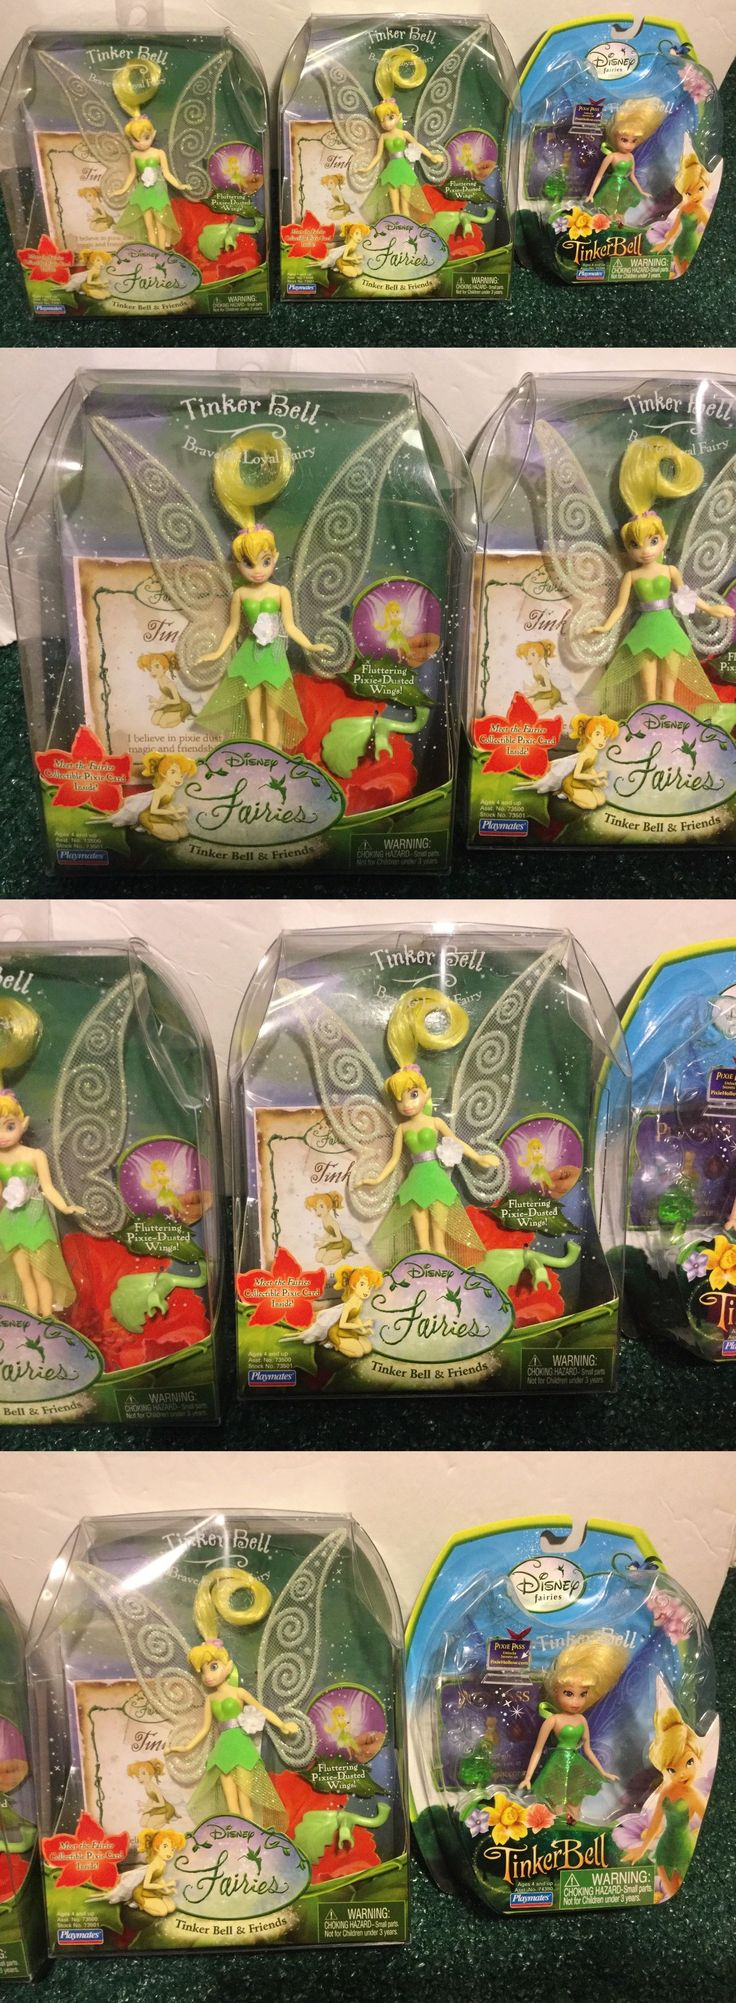 Tinker Bell Peter Pan 146041: Disney Fairies Tinker Bell Friends Figure Lot Brave And Loyal Playmates 2006 2008 -> BUY IT NOW ONLY: $49.99 on eBay!